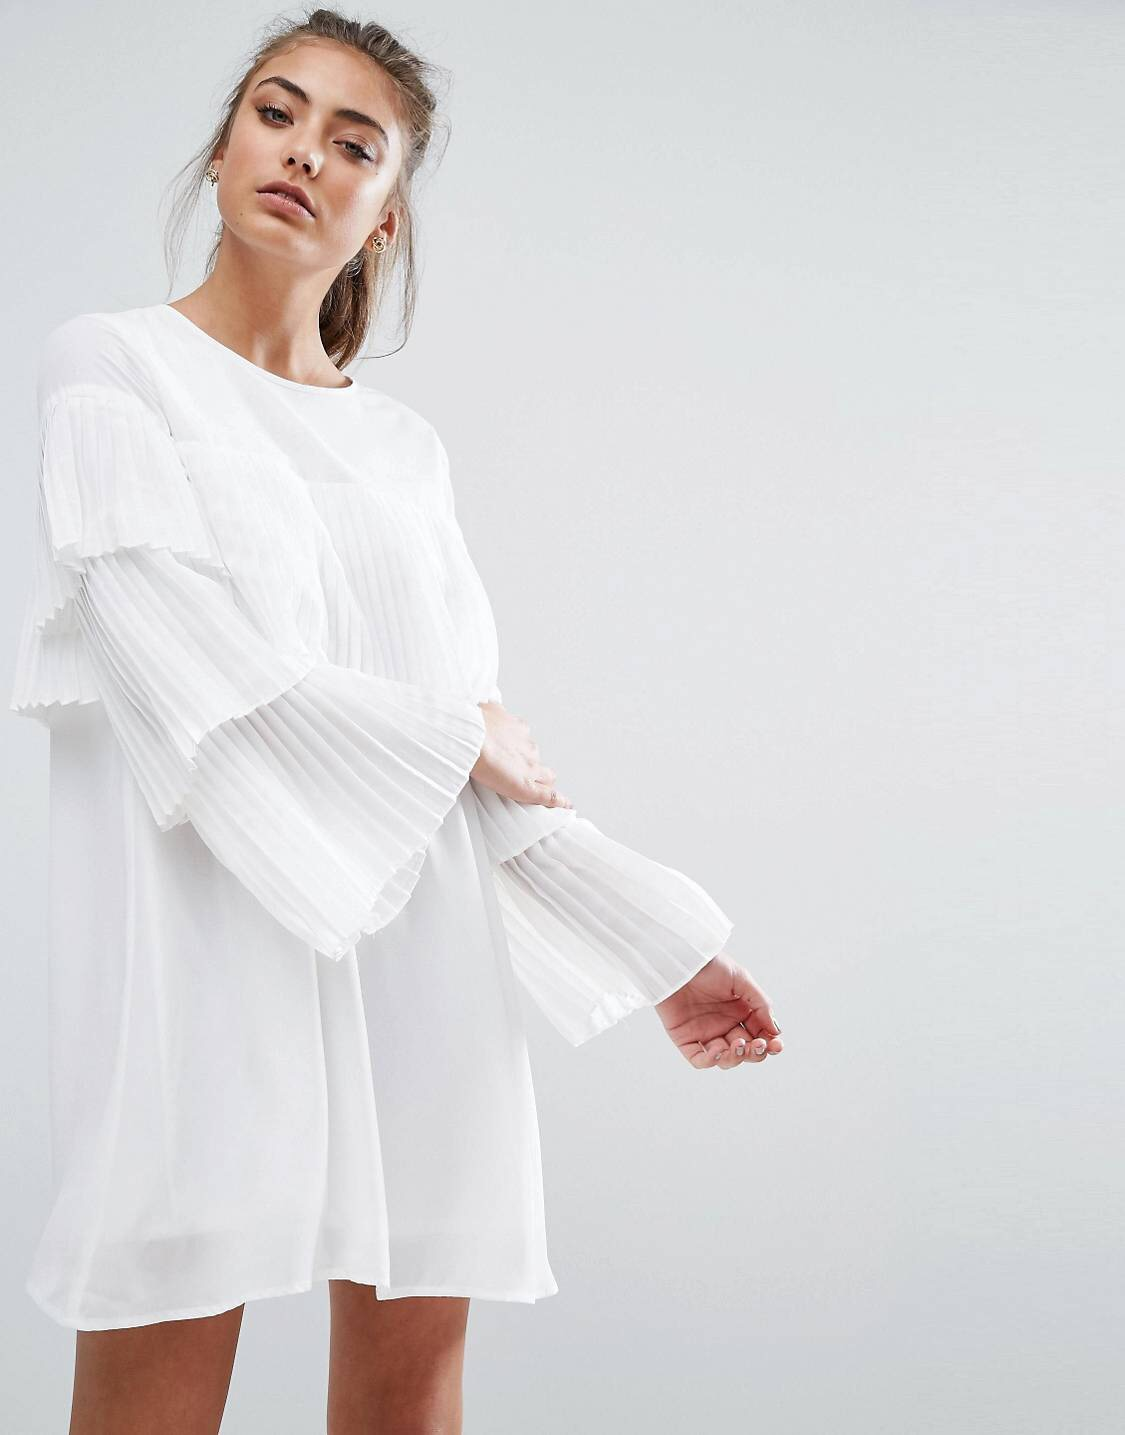 £14 Boohoo Pleated Dress - It says dress, but what they really mean is modest top.